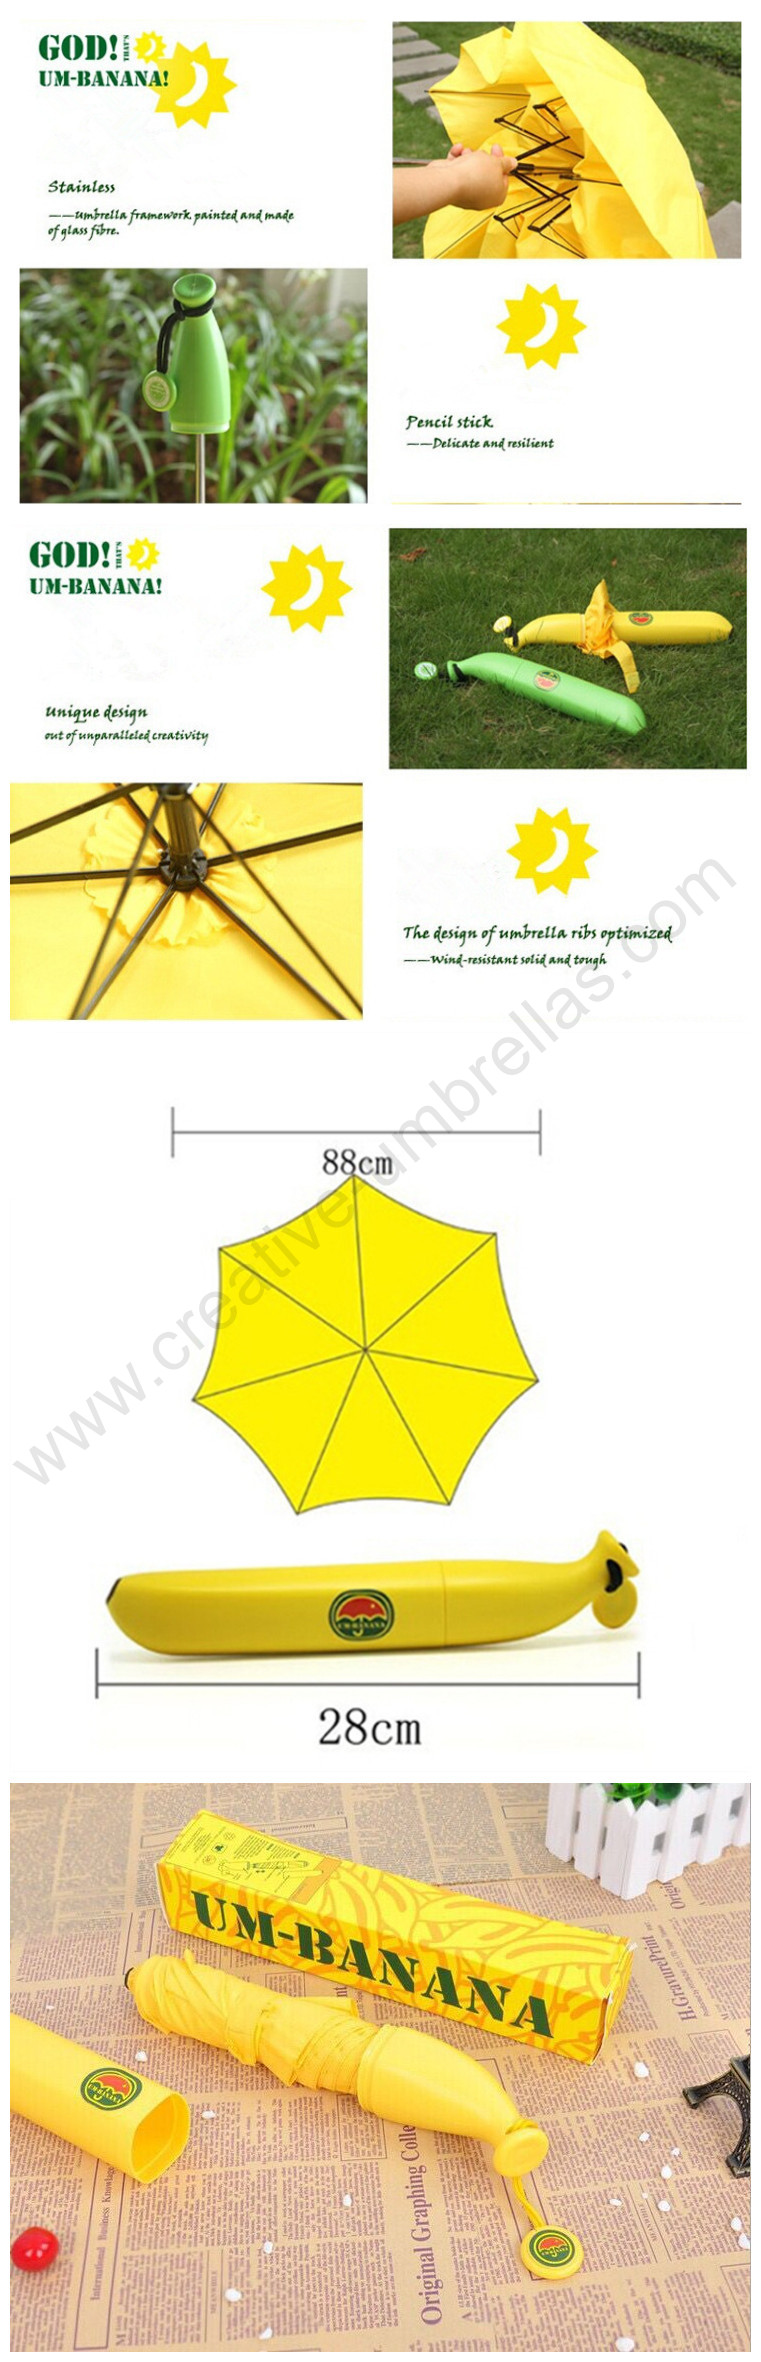 Fruit Veg Novelty Banana or Carrot Compact Folding Umbrella Brolly Telescopic